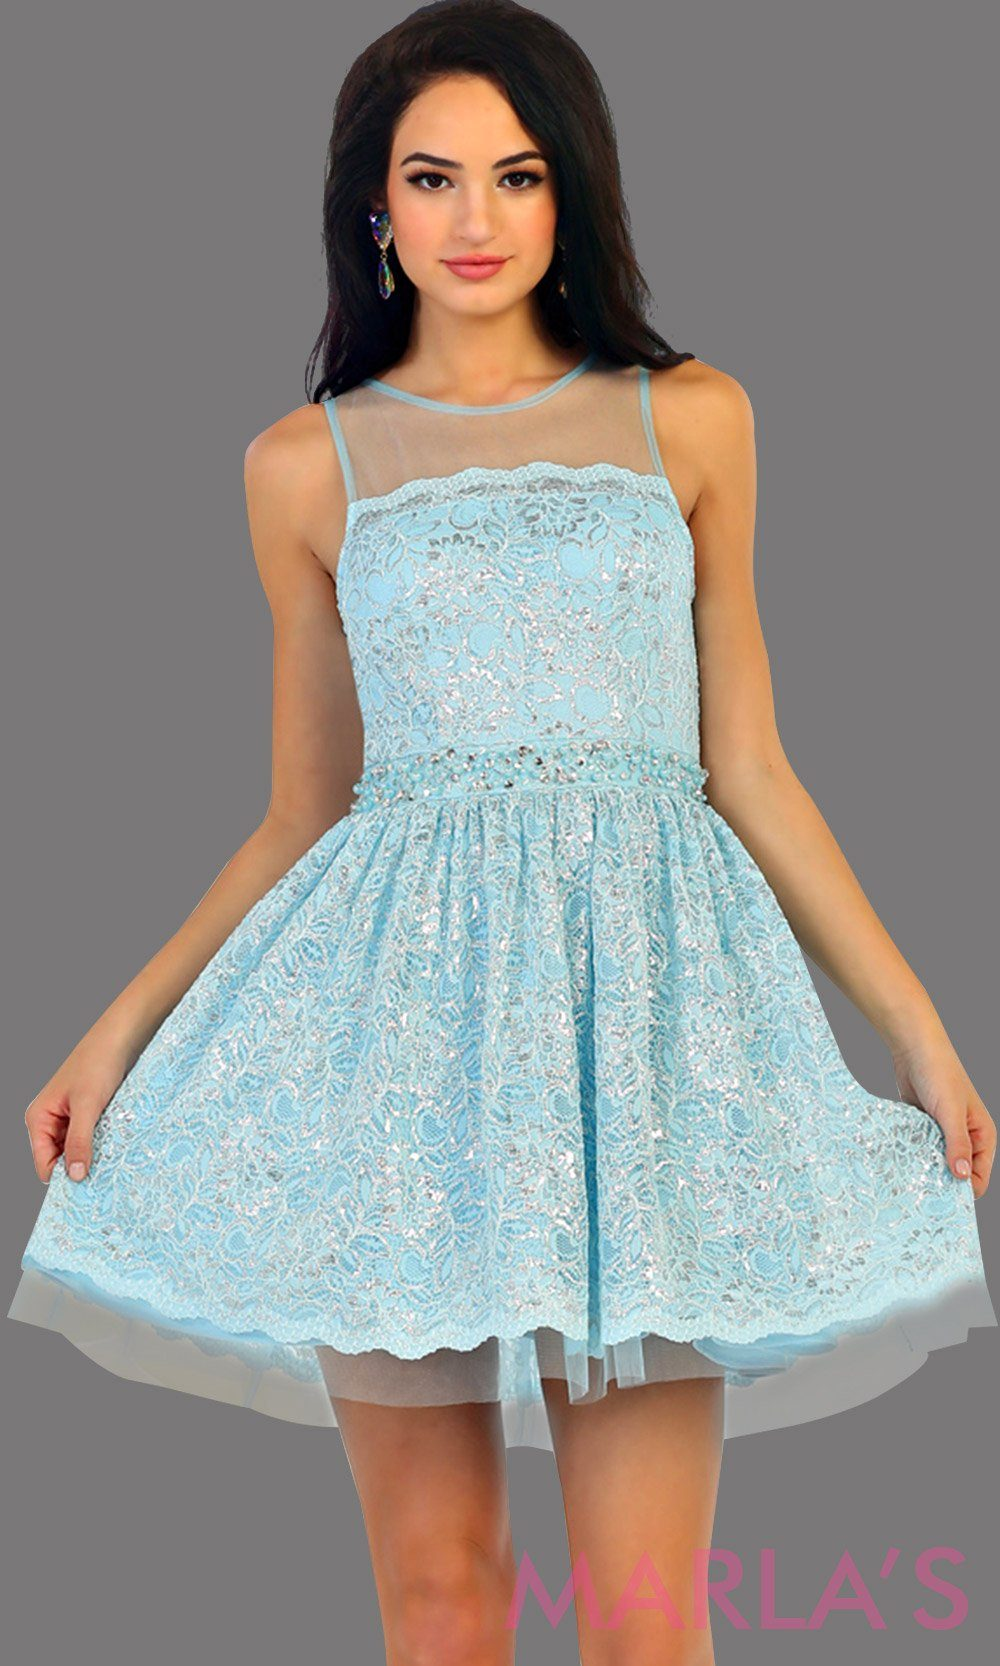 1456-Short high neck aqua grade 8 graduation lace dress. Perfect blue short prom dress, cofirmation, grad dress, or wedding guest dress, damas. Available in plus sizes.